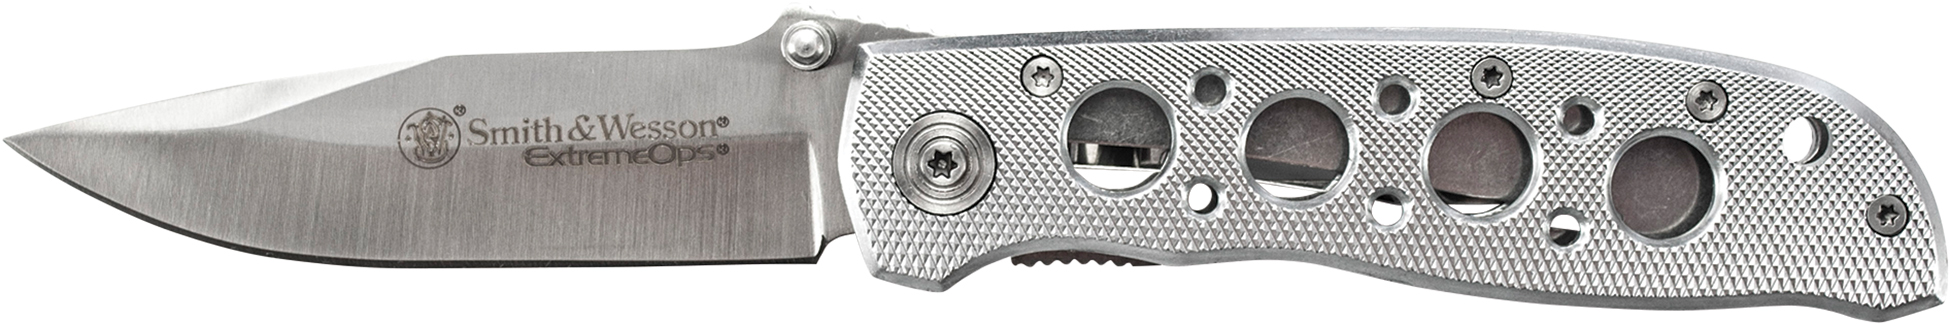 CK105H - Smith & Wesson Extreme Ops Silver w/Holes